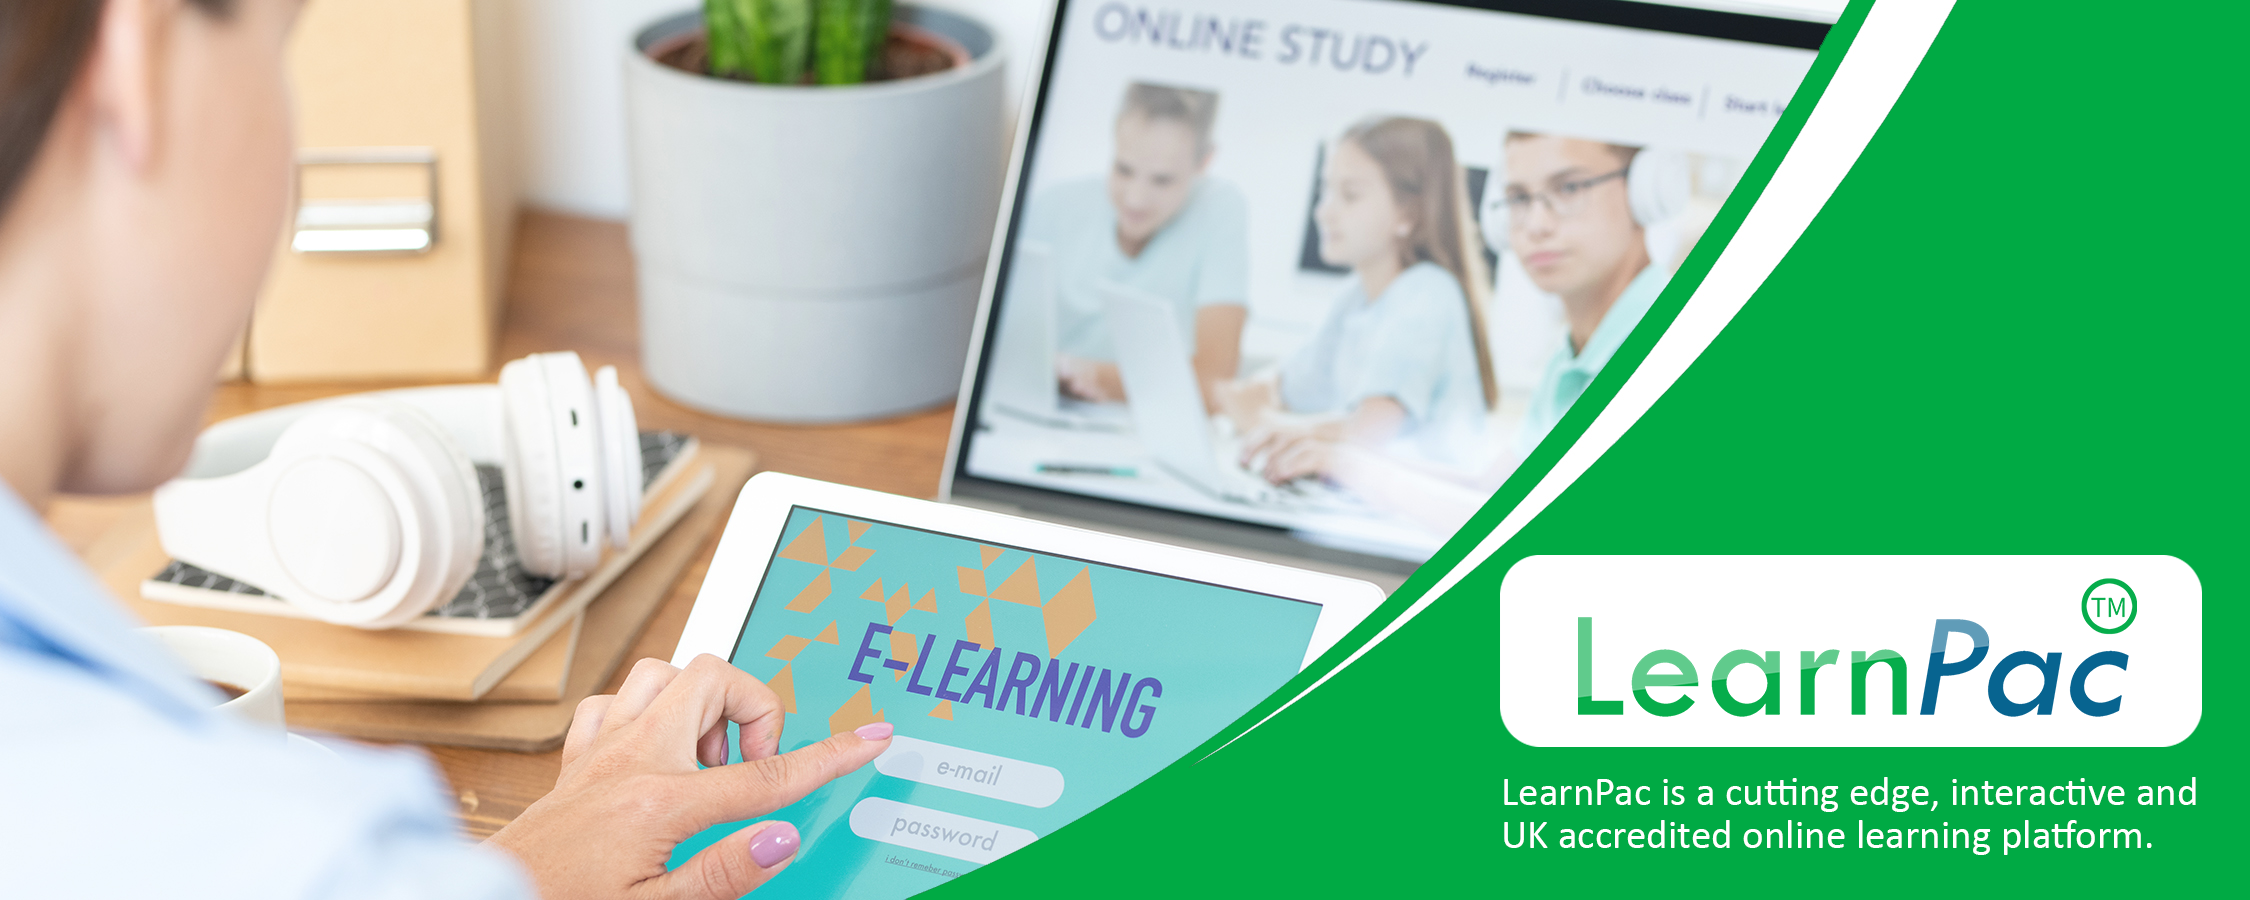 First Aid within the Dental Environment - Online Learning Courses - E-Learning Courses - LearnPac Systems UK --